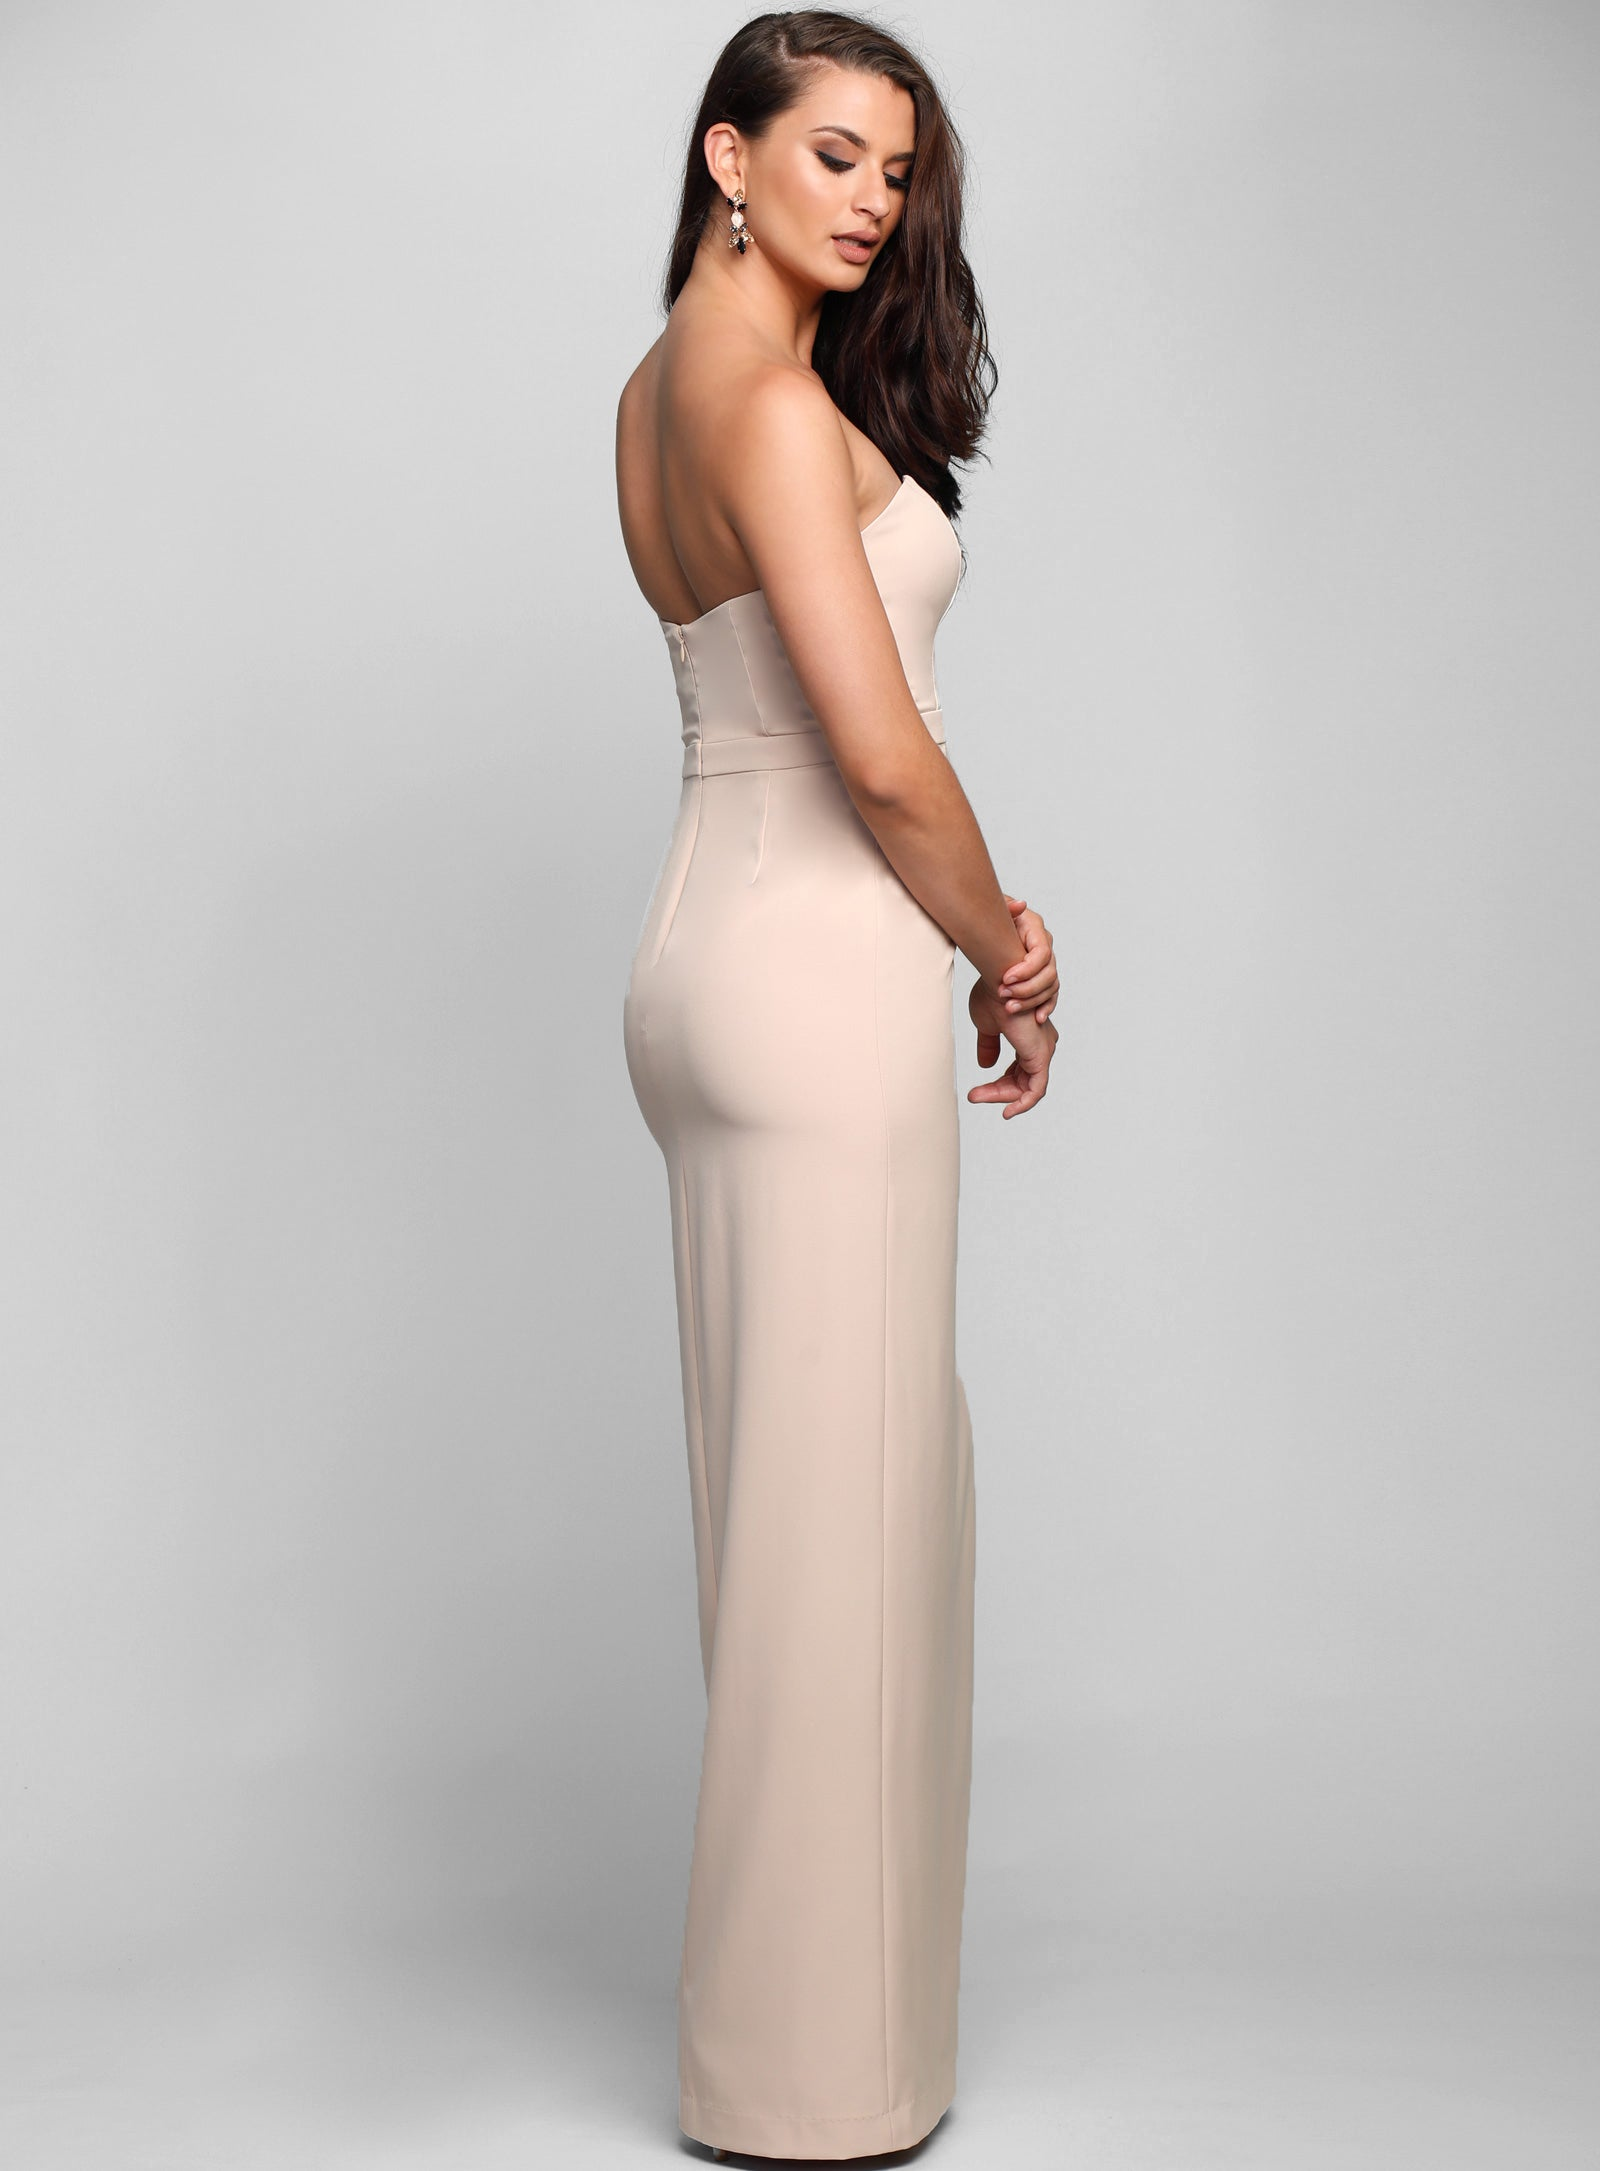 Kelly Pencil Dress